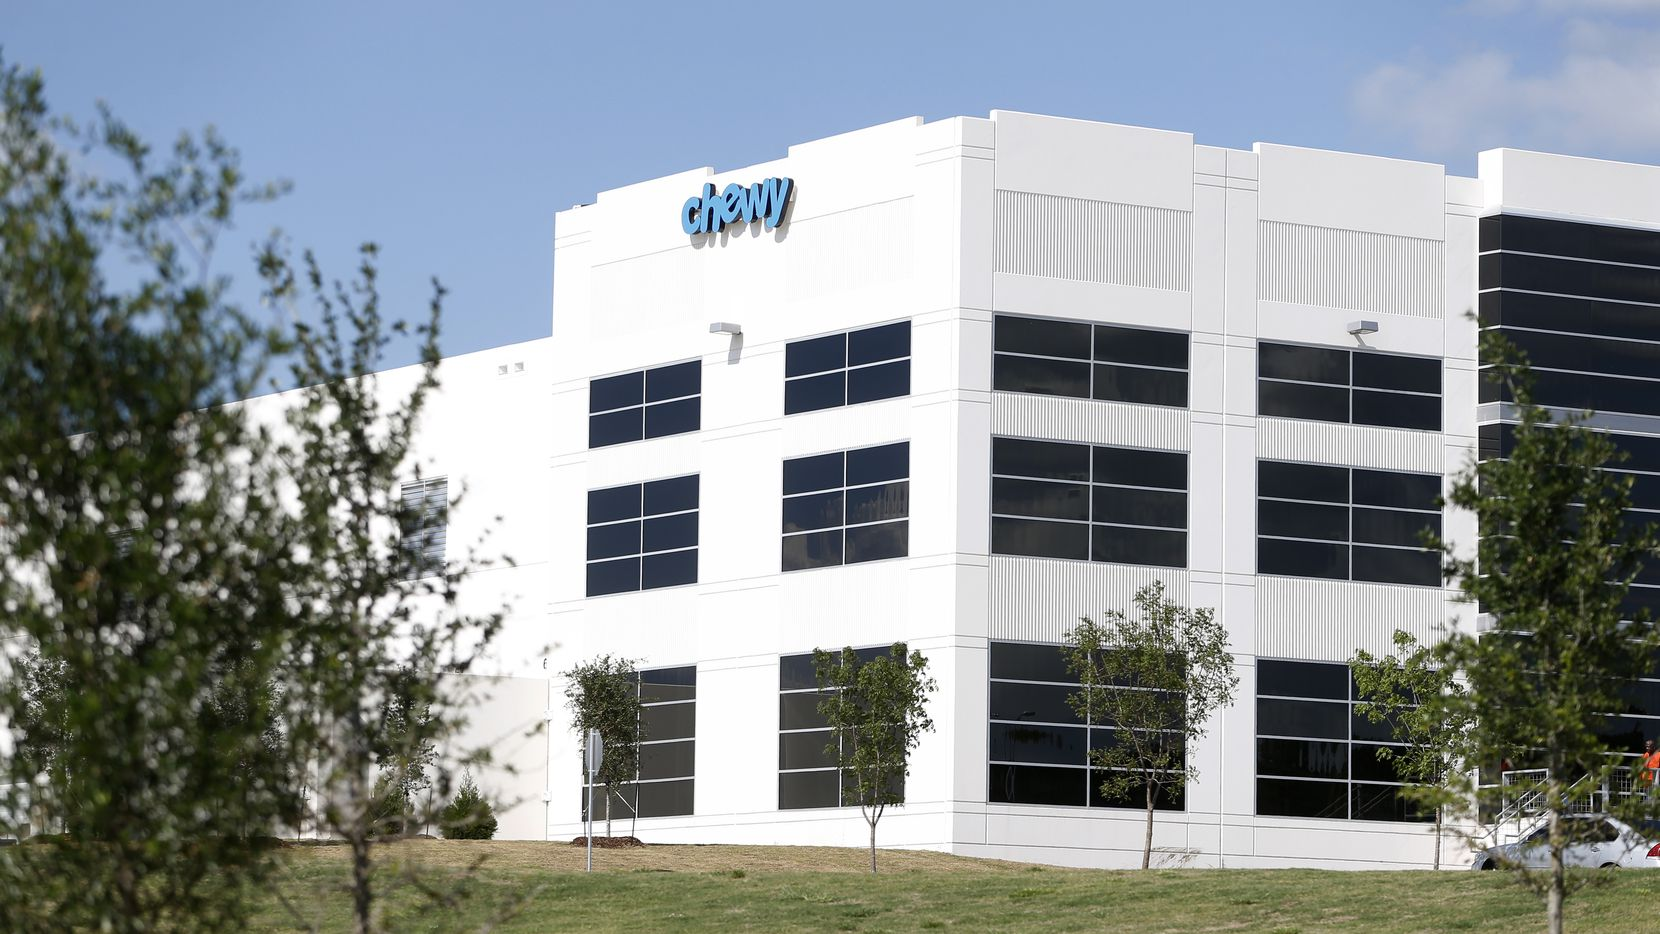 Chewy has a major distribution center in the Mountain Creek Business Park in Southwest Dallas.